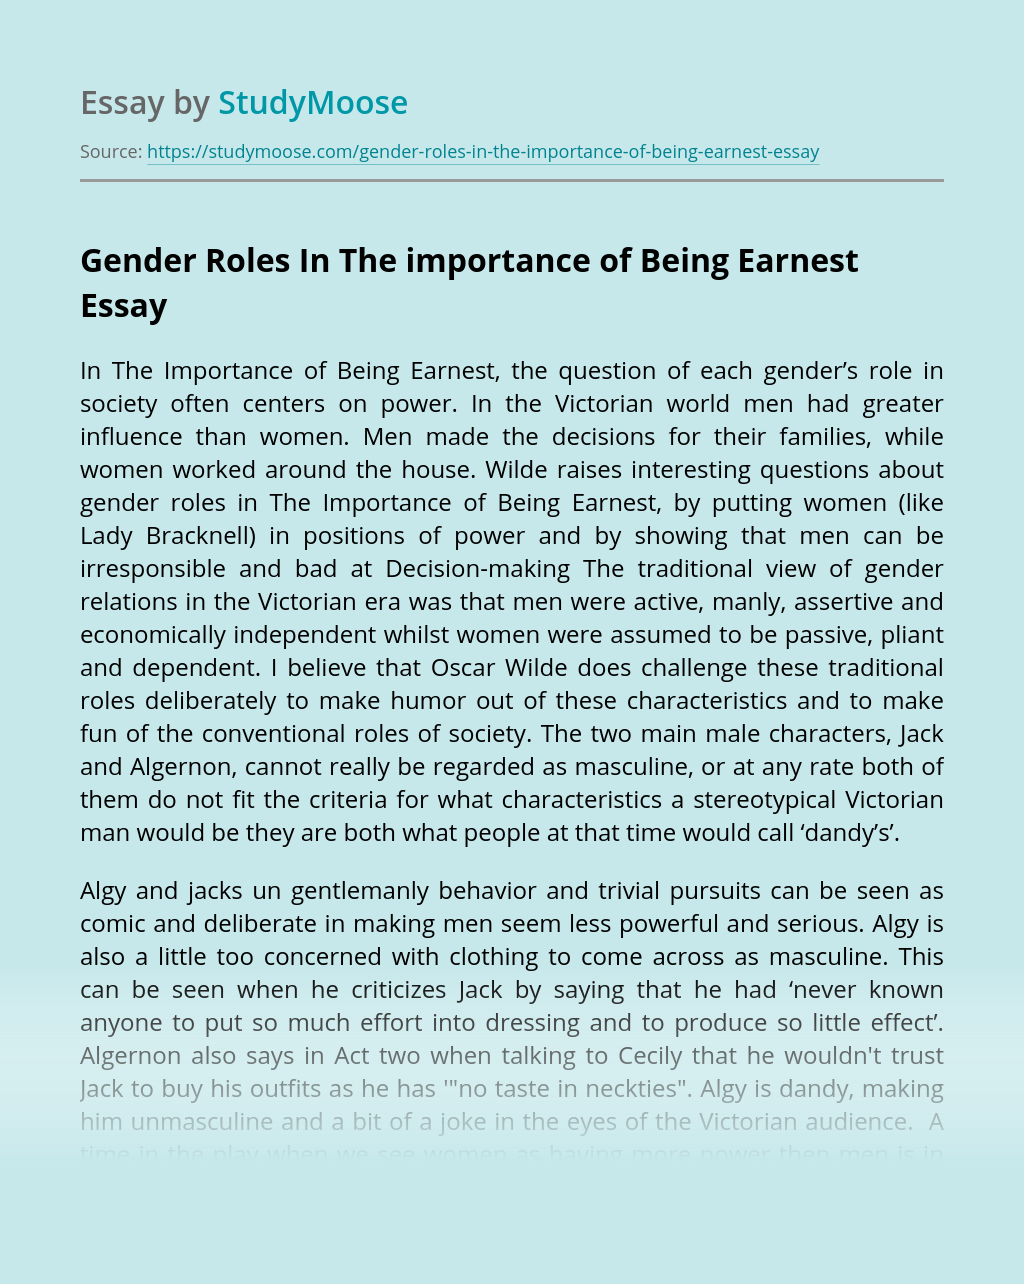 Gender Roles In The importance of Being Earnest